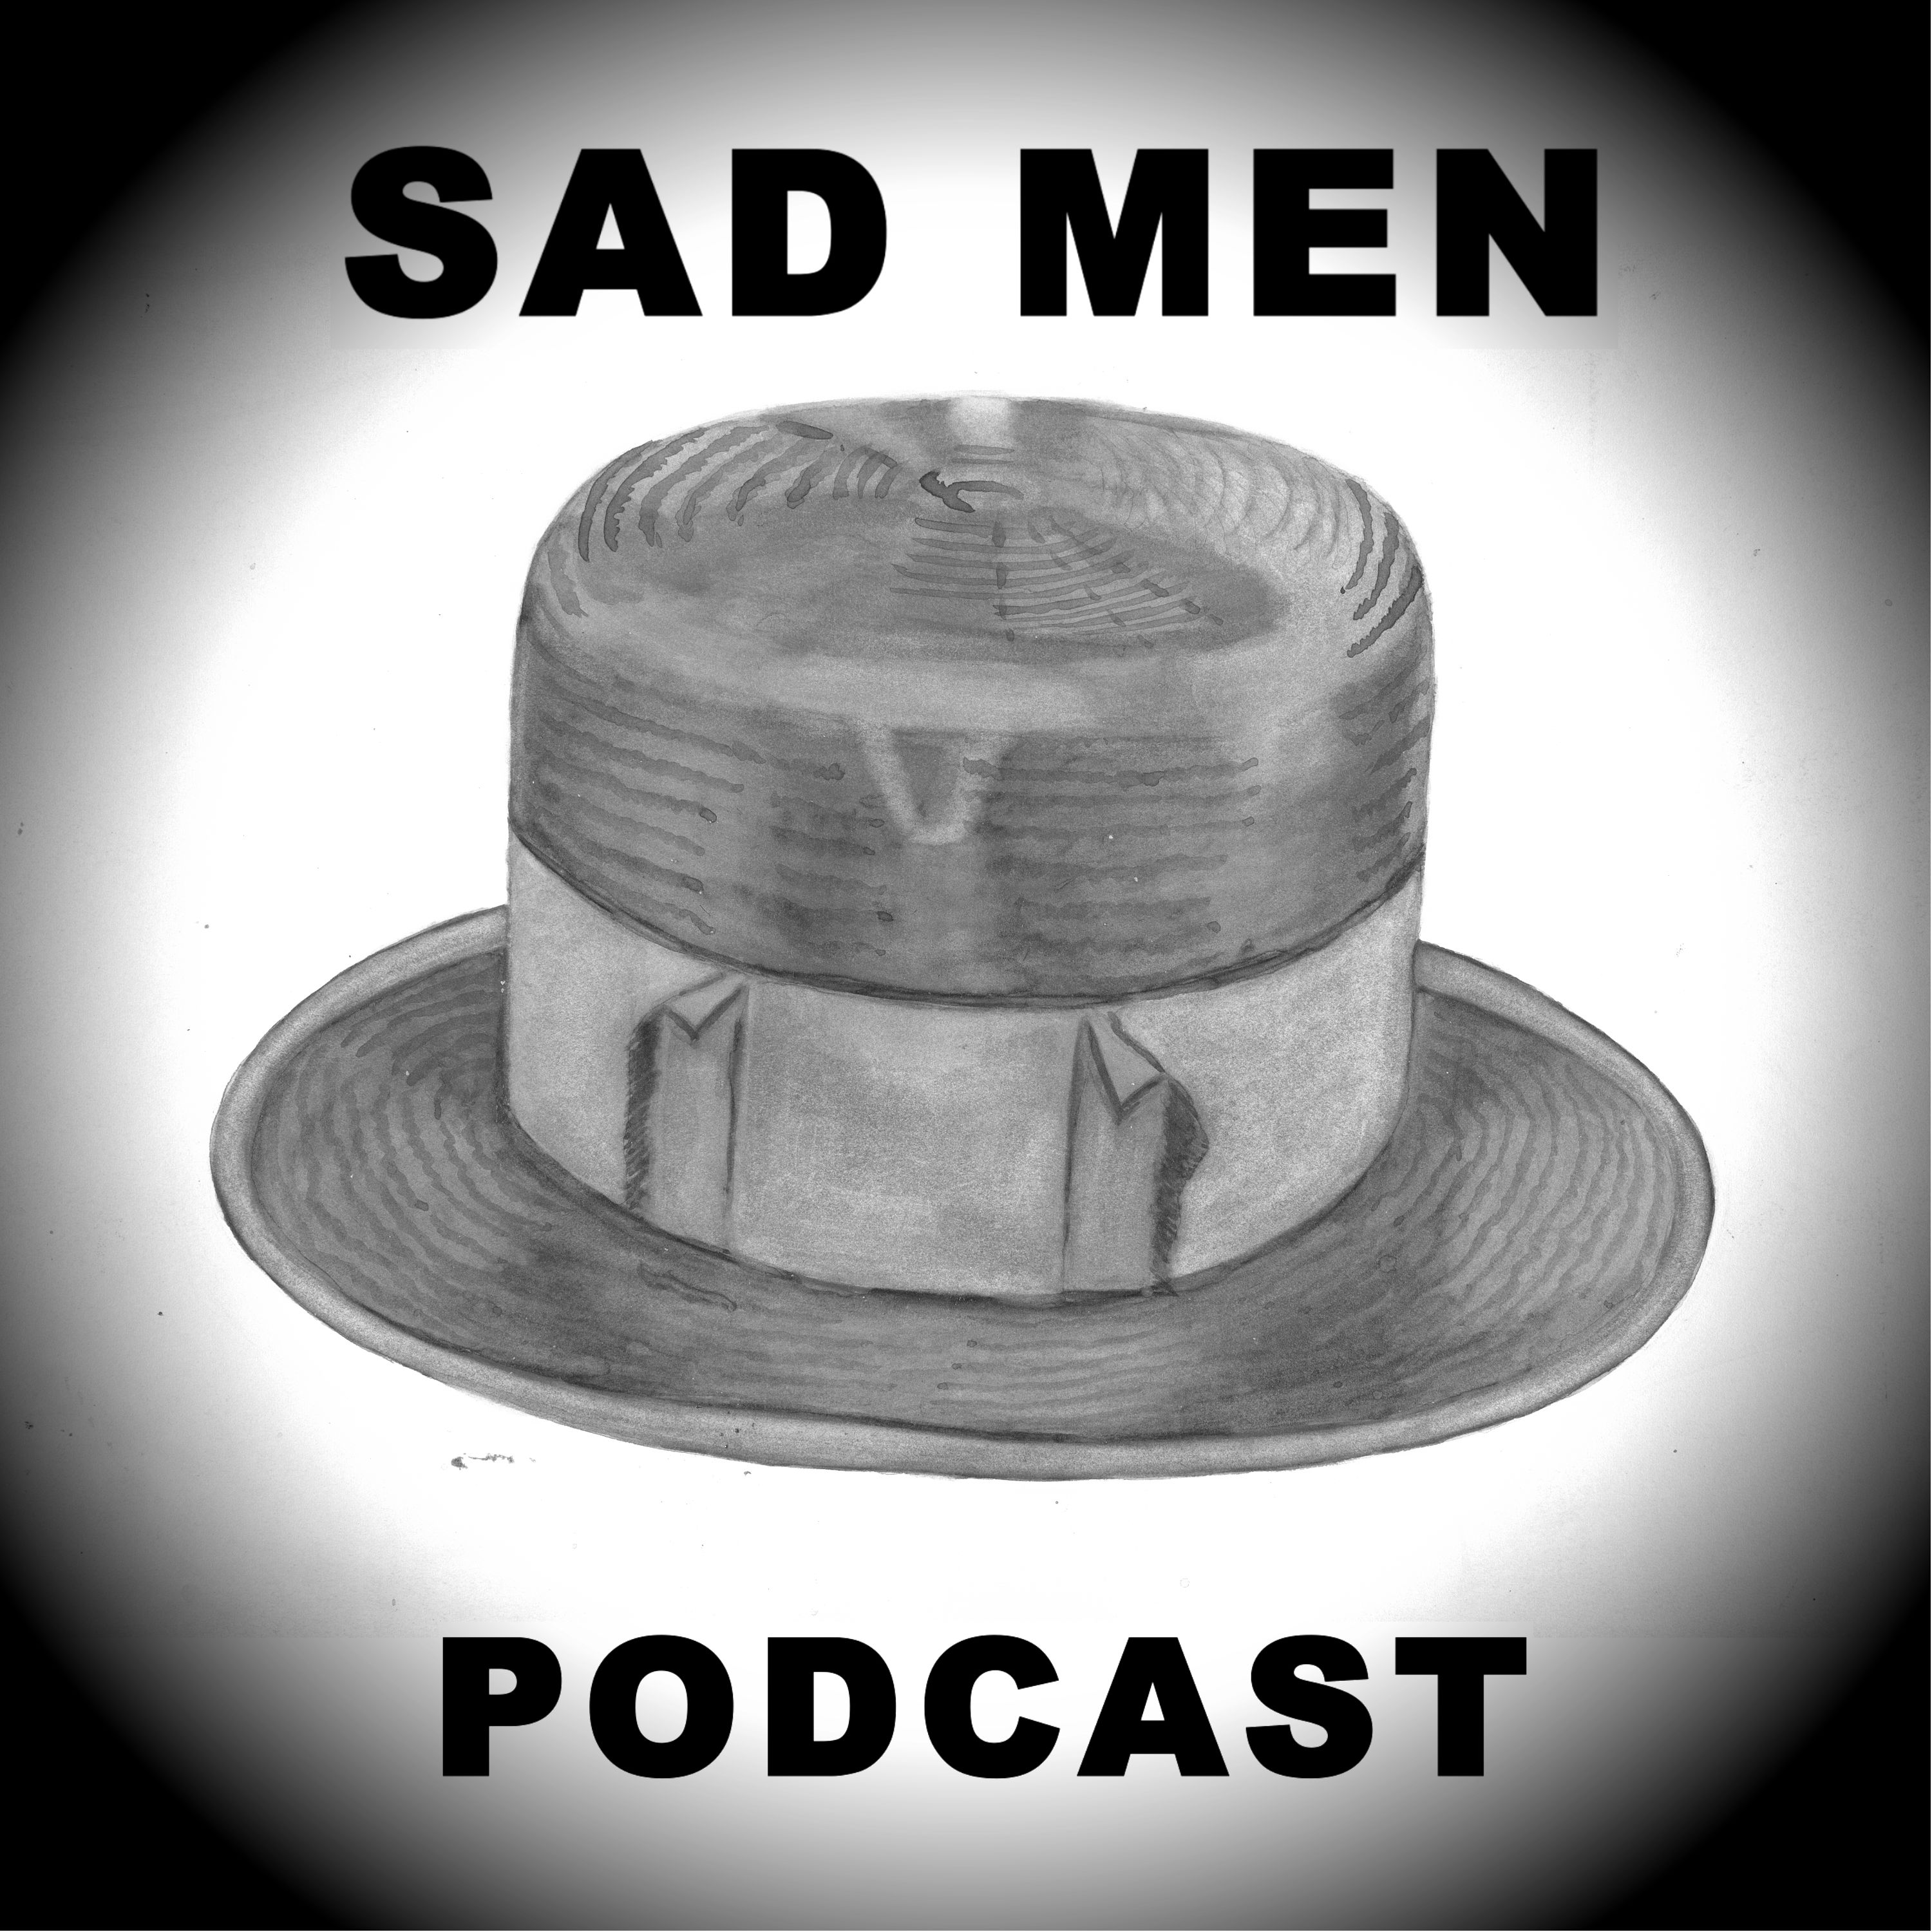 Sad Men Podcast